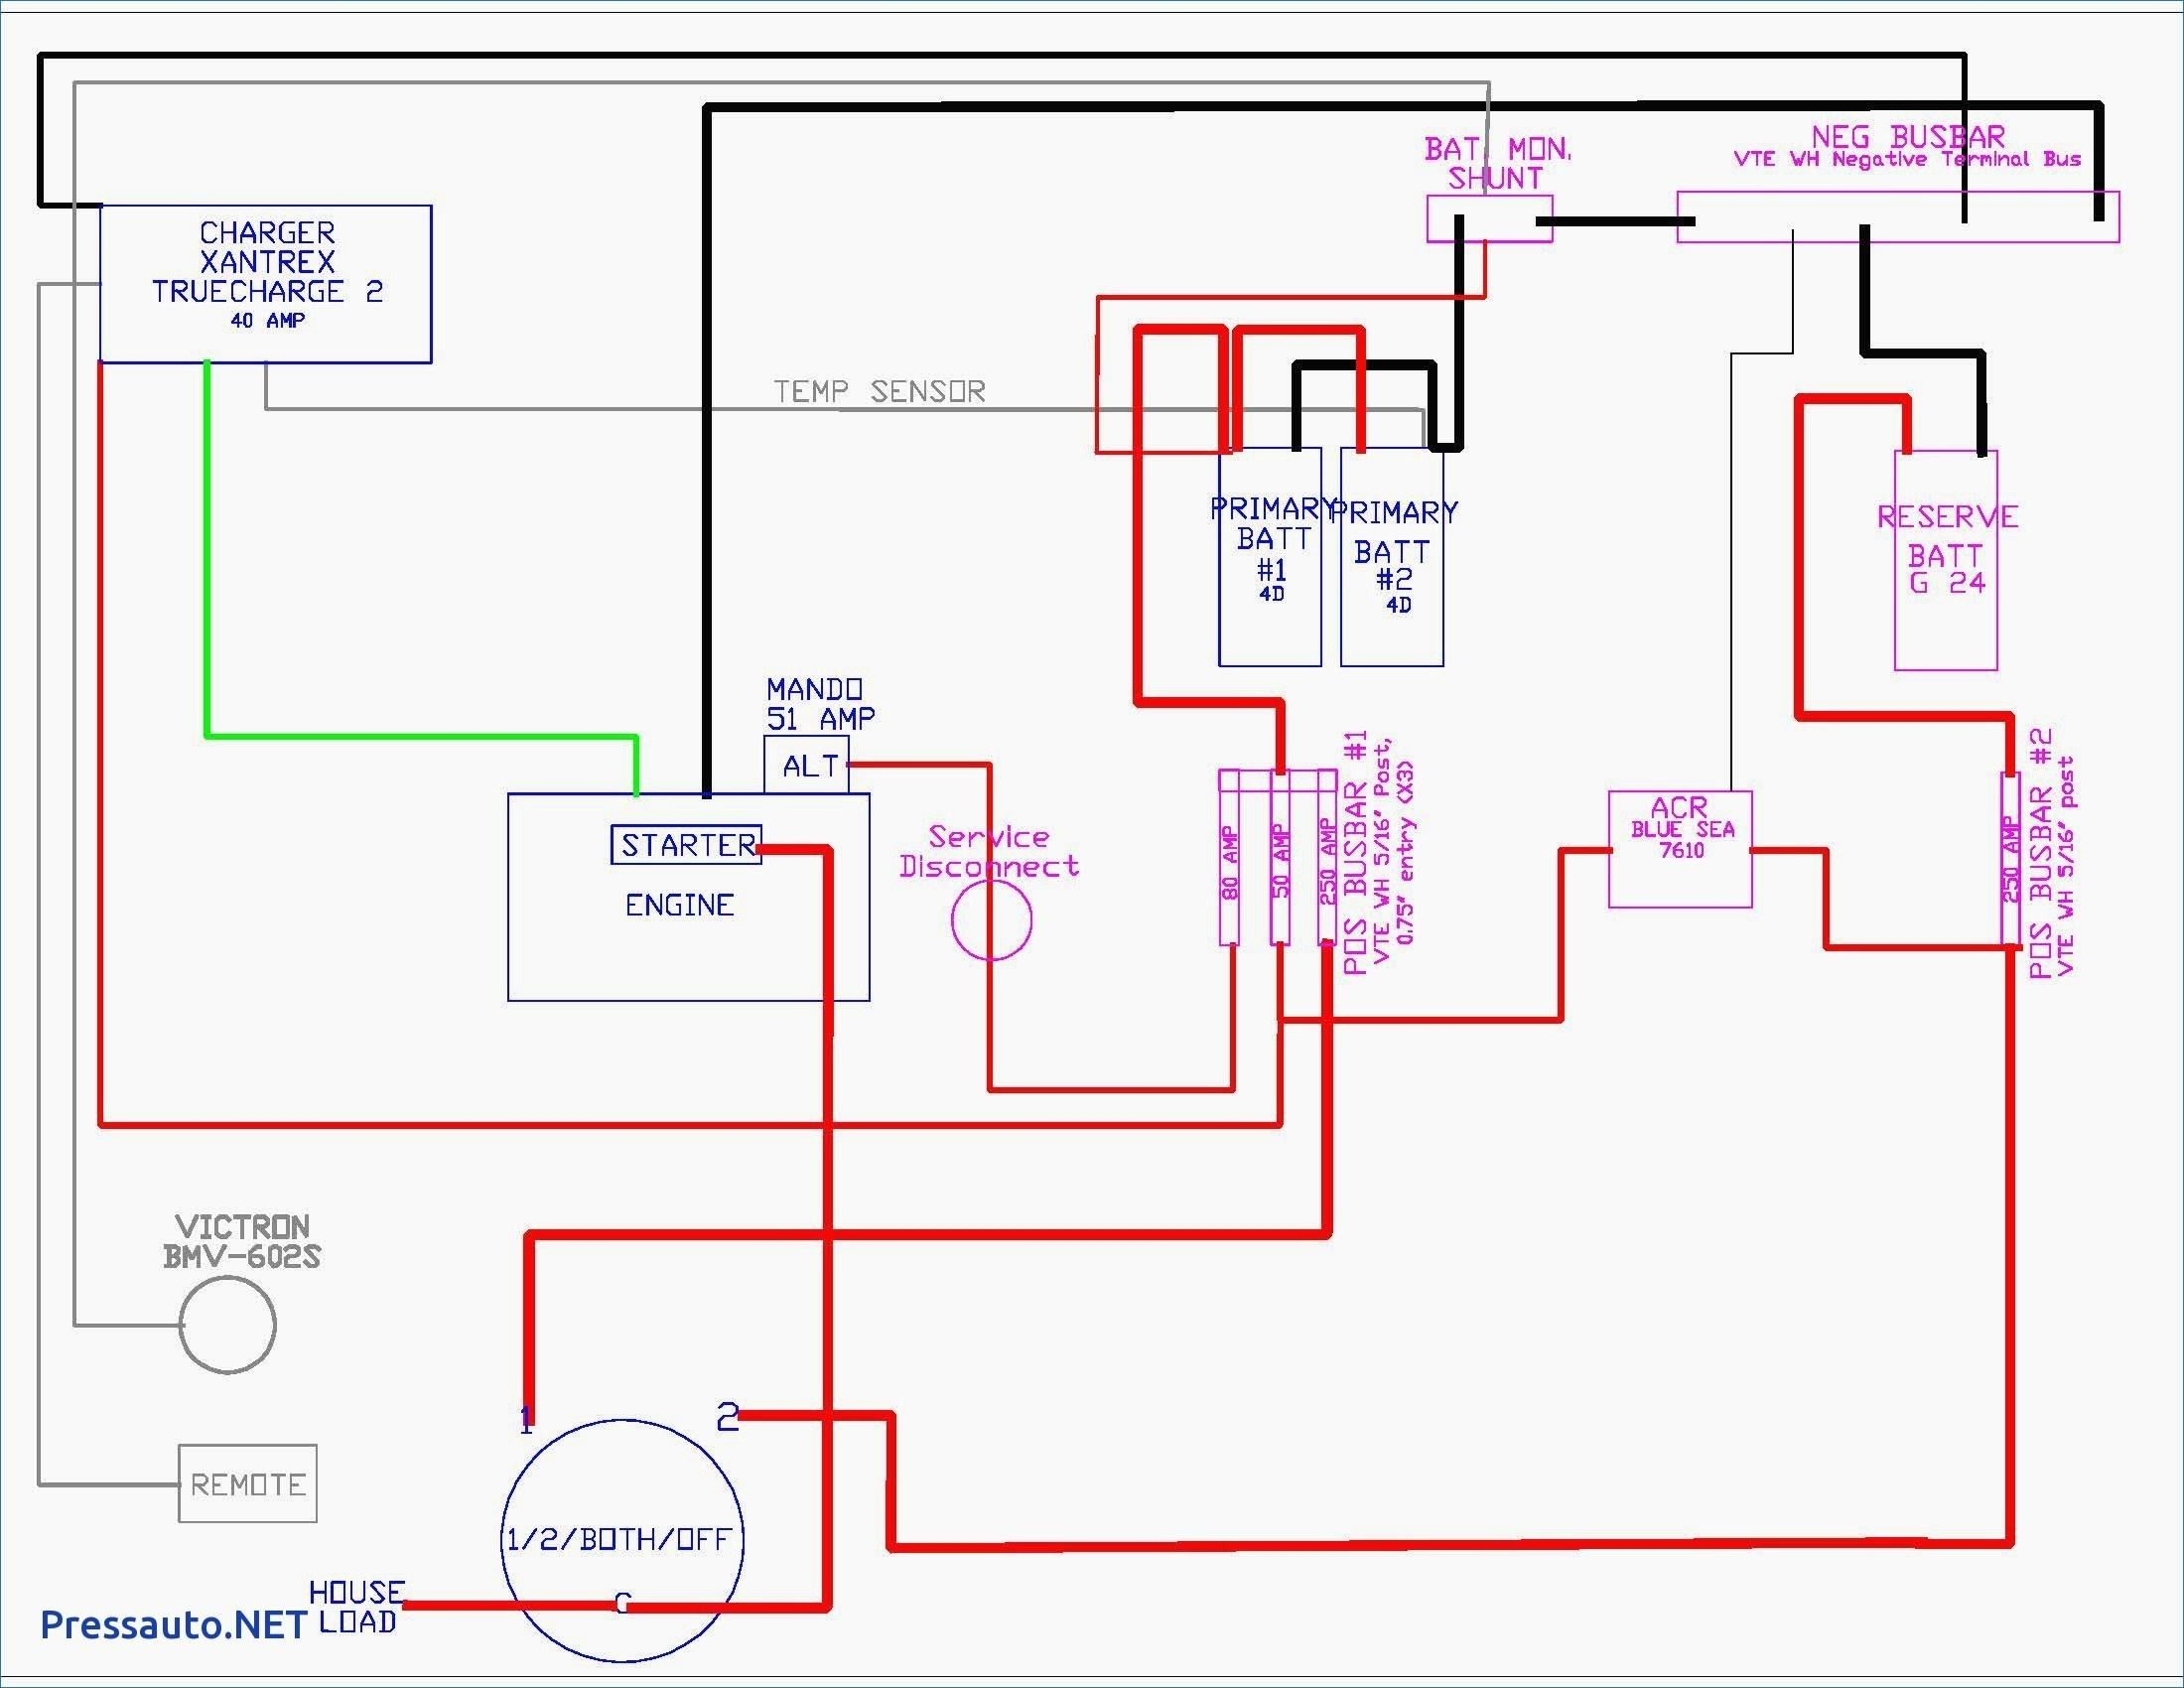 Pin By Yaquba J Hassan On Download Electrical Circuit Diagram Electrical Diagram Circuit Diagram